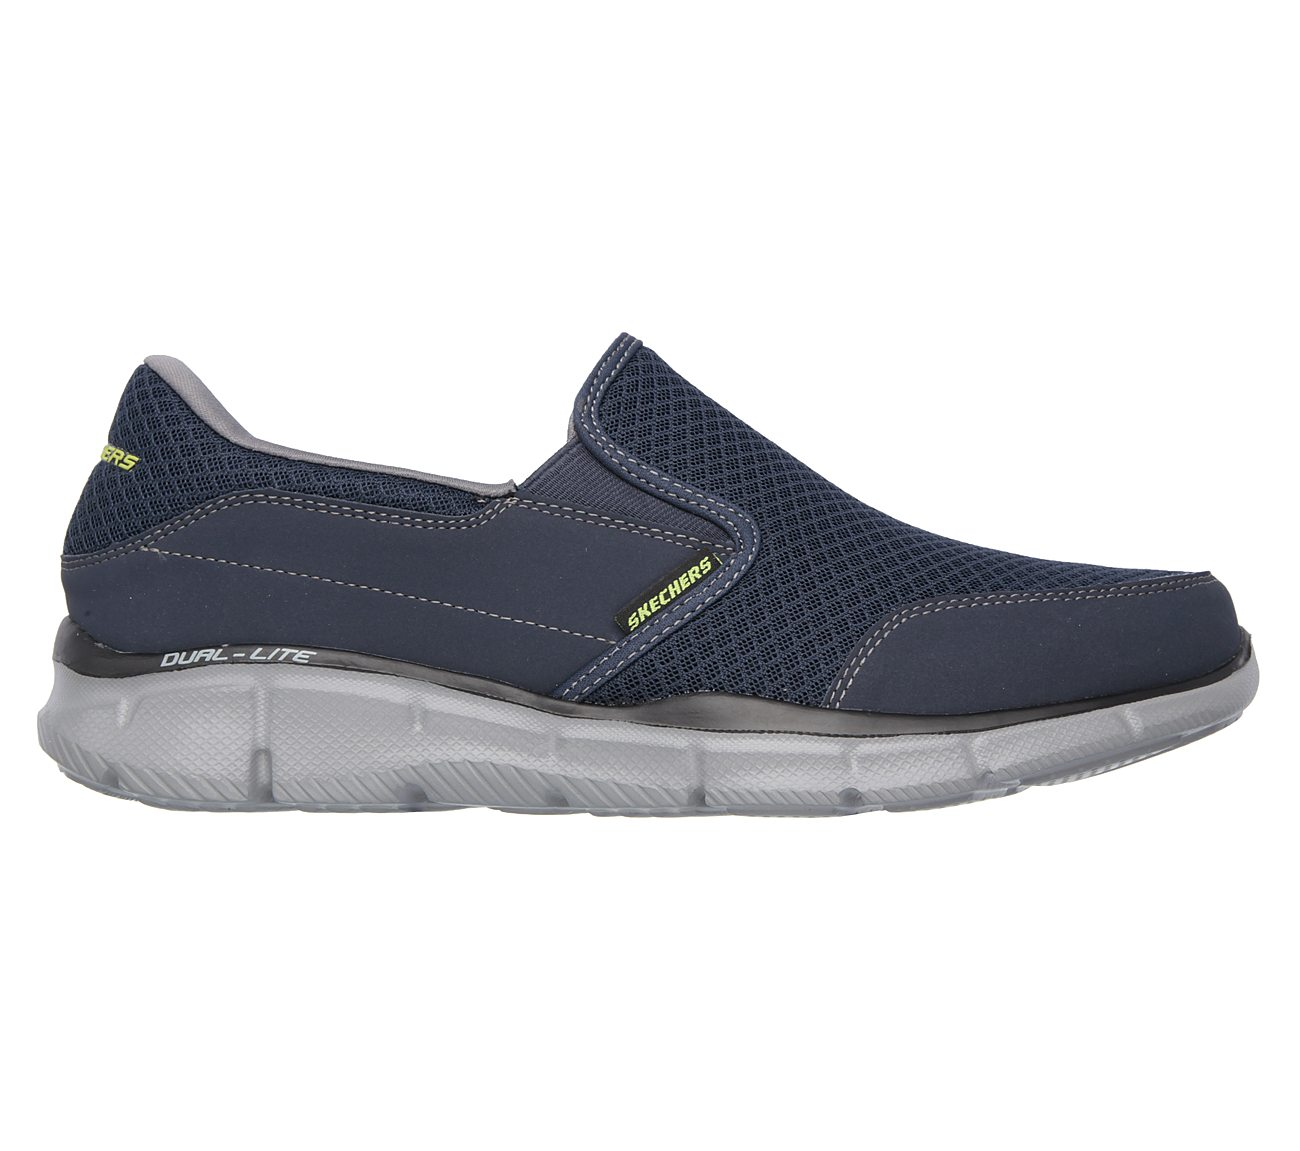 e3fc4eaa776f4 Buy SKECHERS Equalizer - Persistent SKECHERS Sport Shoes only £59.00